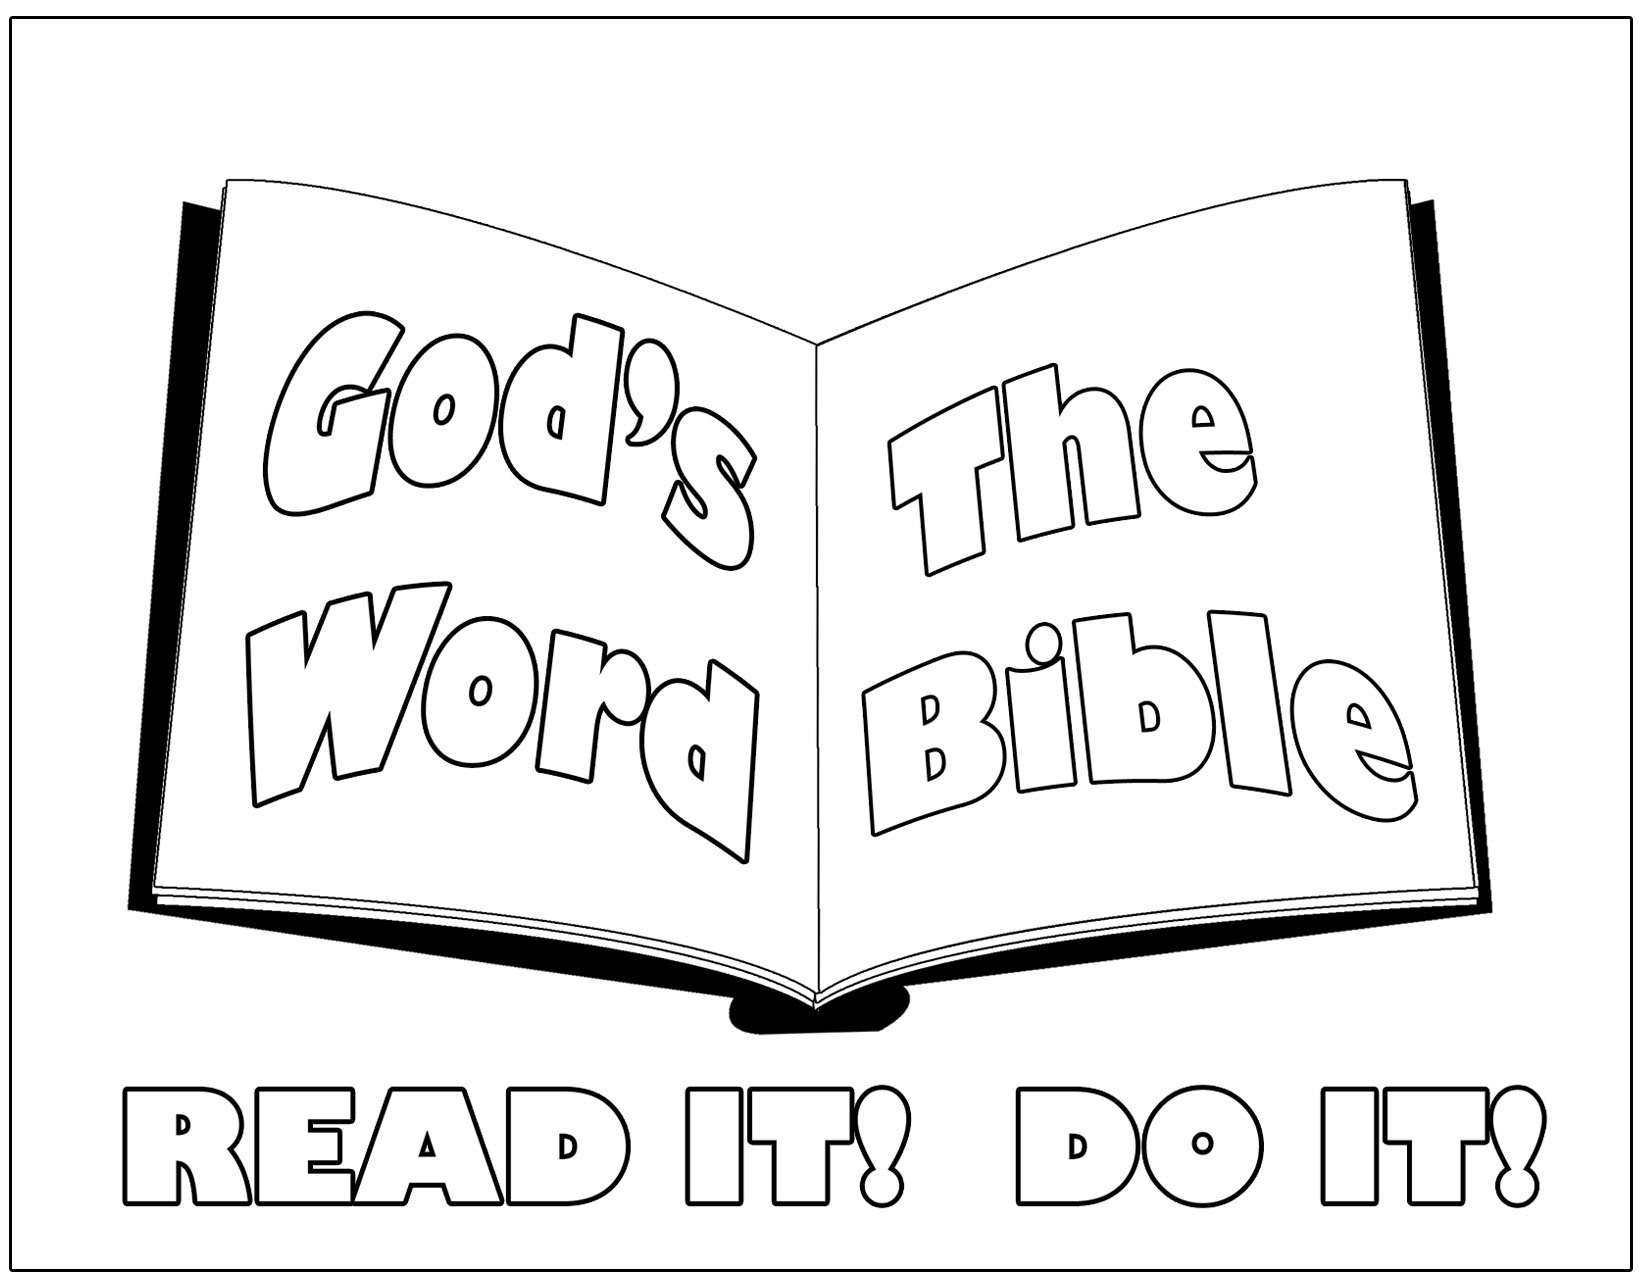 Printable coloring pages about the bible - Free Bible Coloring Pages